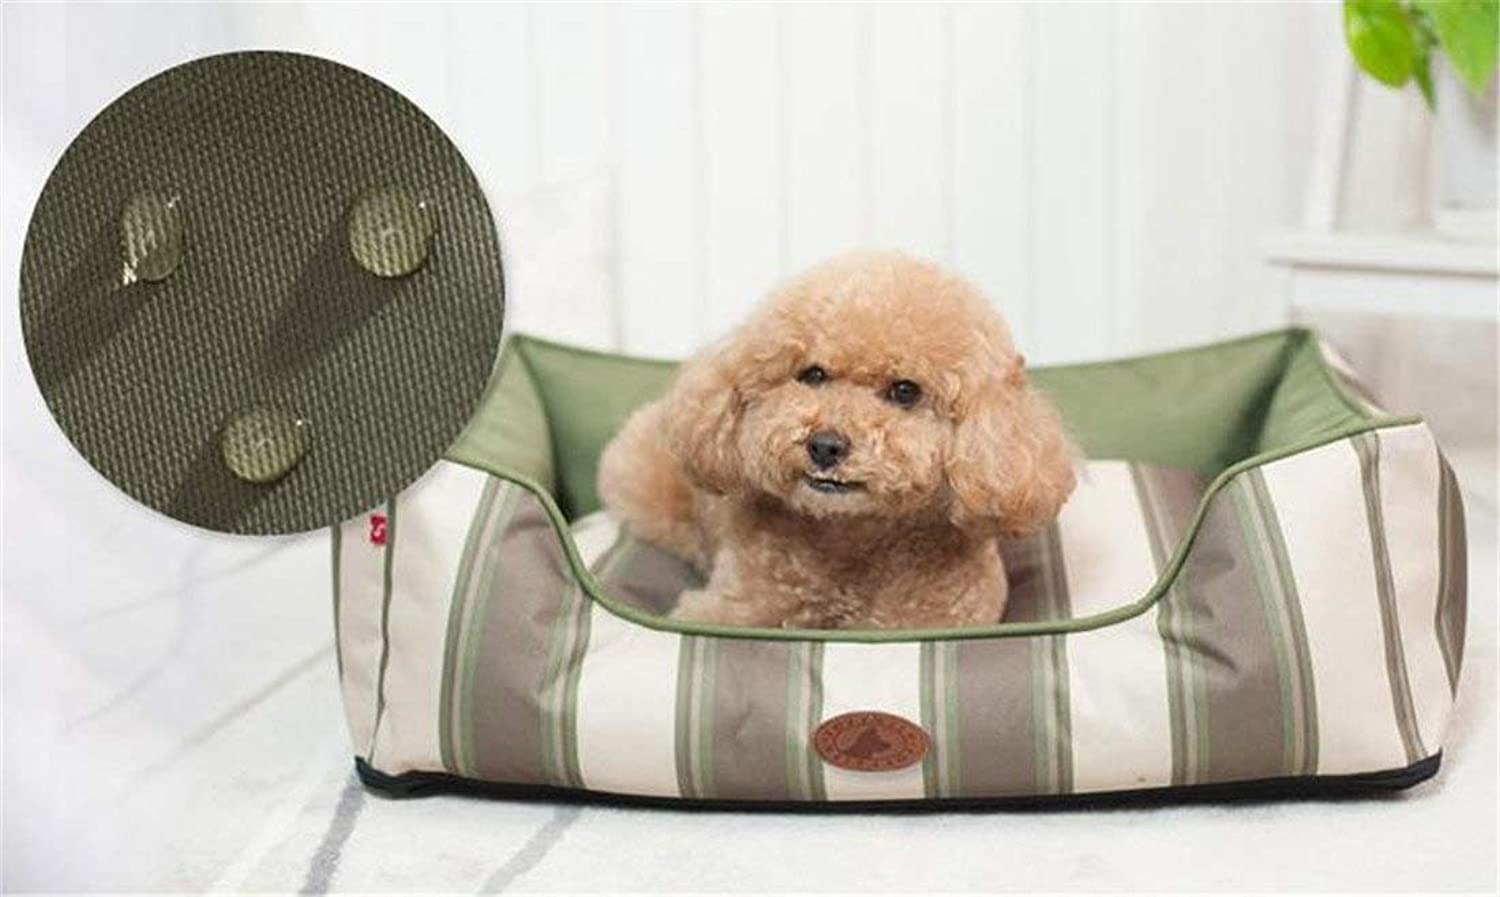 KIUJHY Dog Bed Pet Supplies and Washable FlipType Design Four